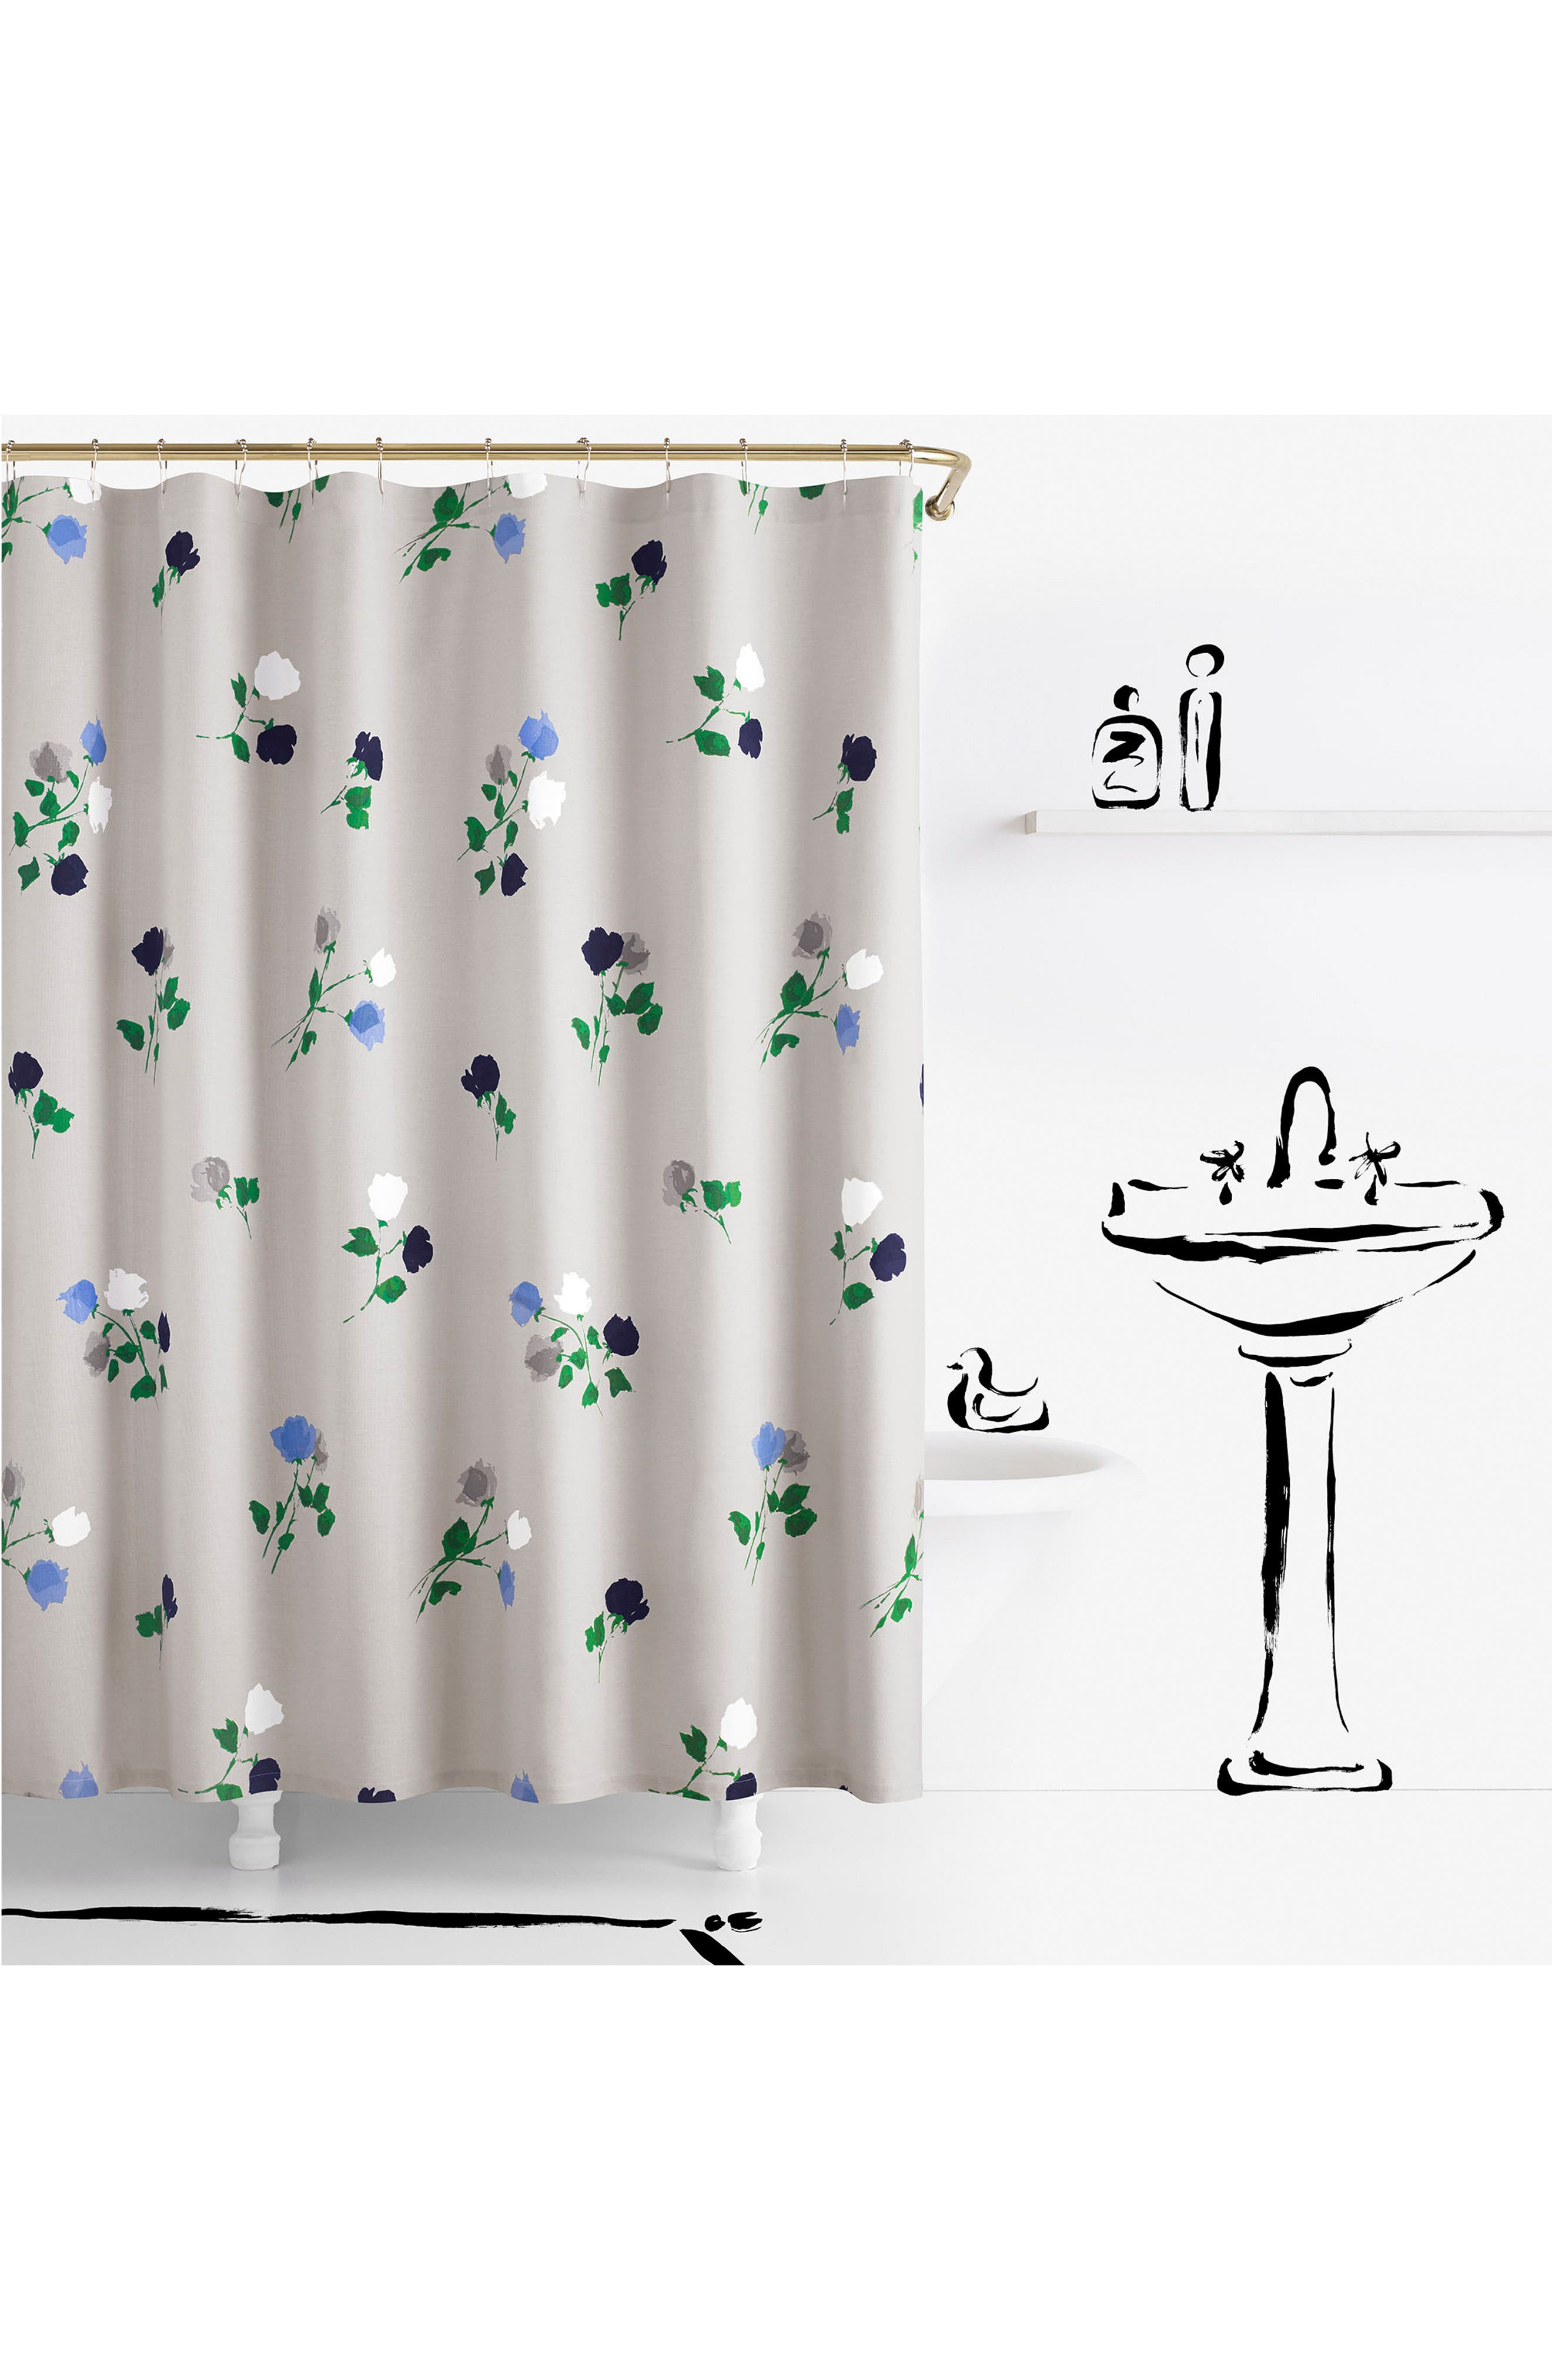 willow court shower curtain,                         Main,                         color, 020